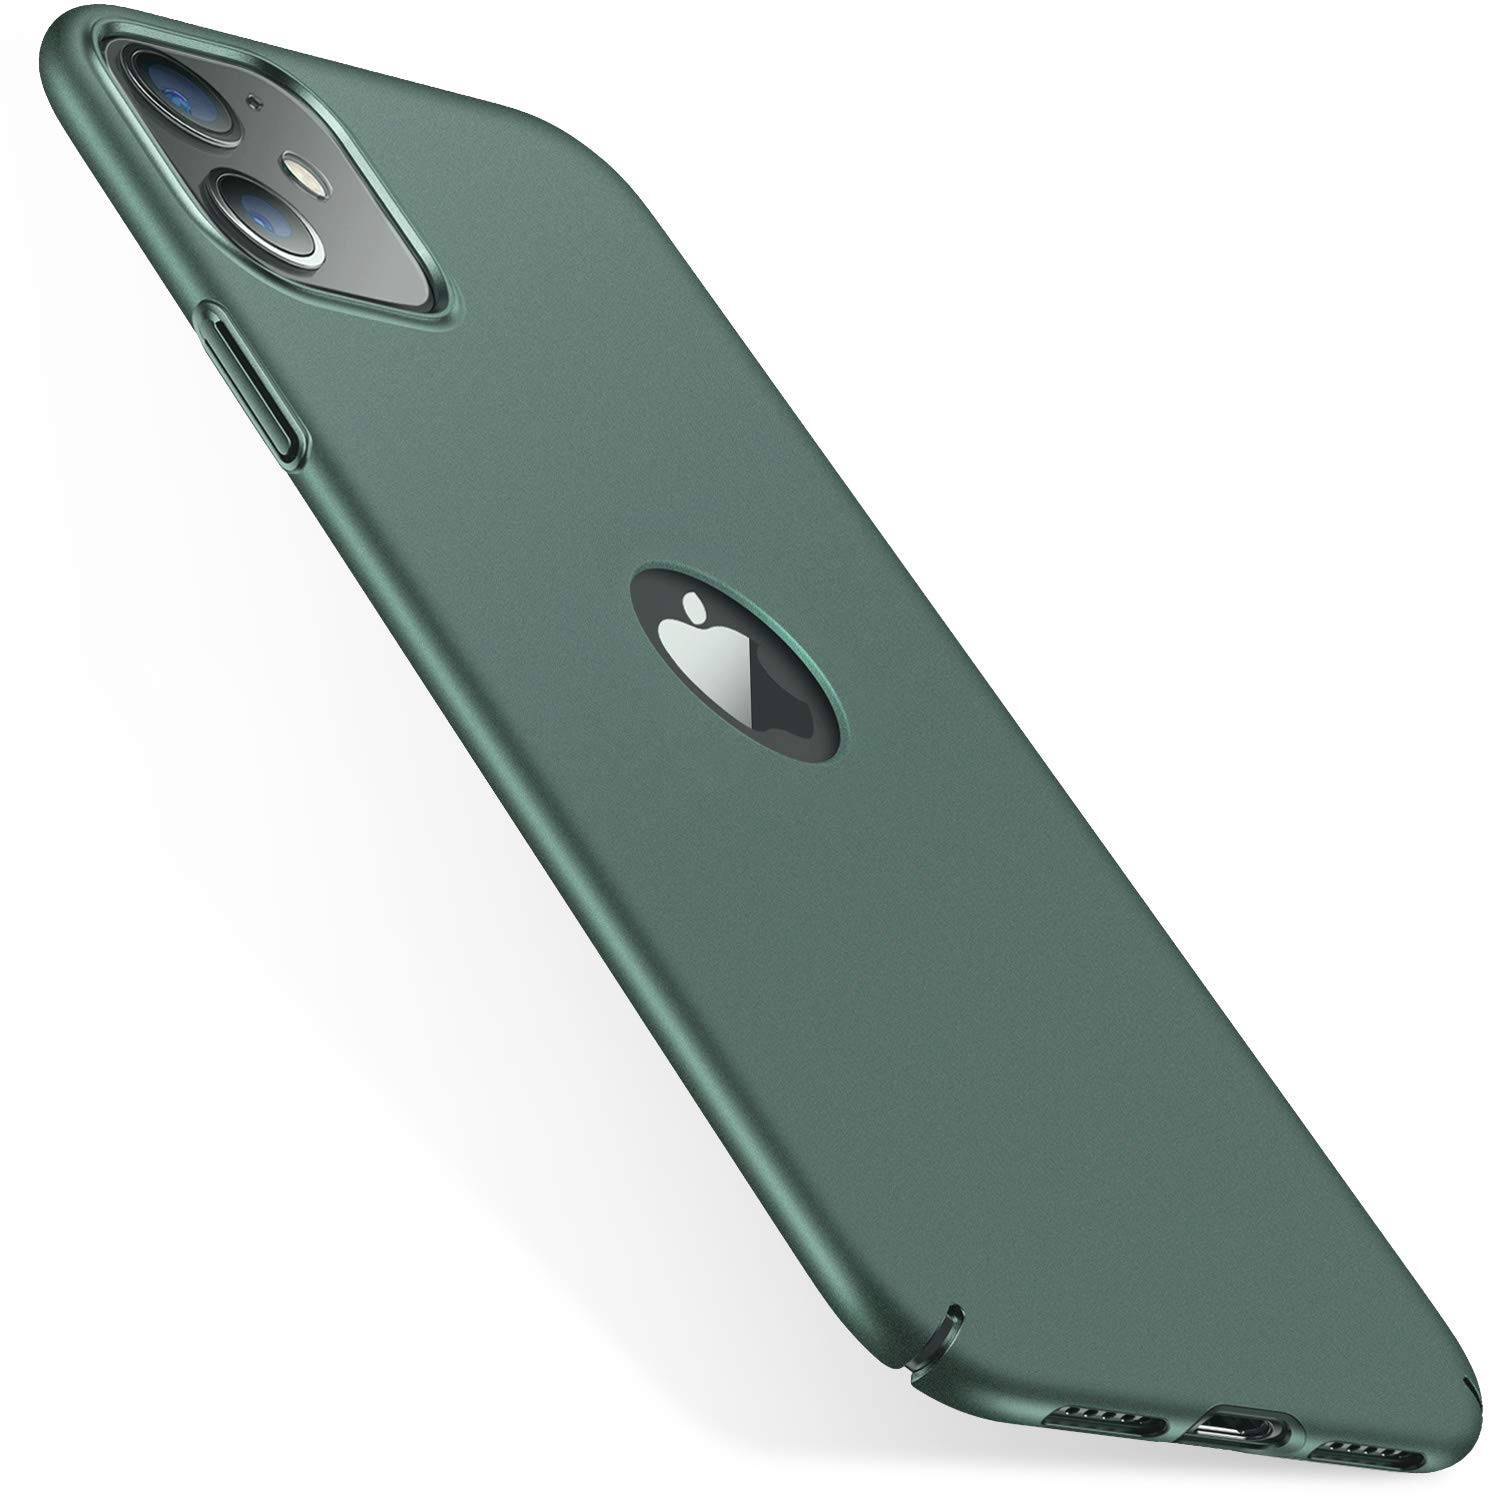 CASEKOO Slim Fit iPhone 11 Case, [Logo Visible] Ultra-Thin Hard Plastic Protective Phone Case Cover with Matte Finish Coating Cases for iPhone 11 6.1 inch 2019, Midnight Green